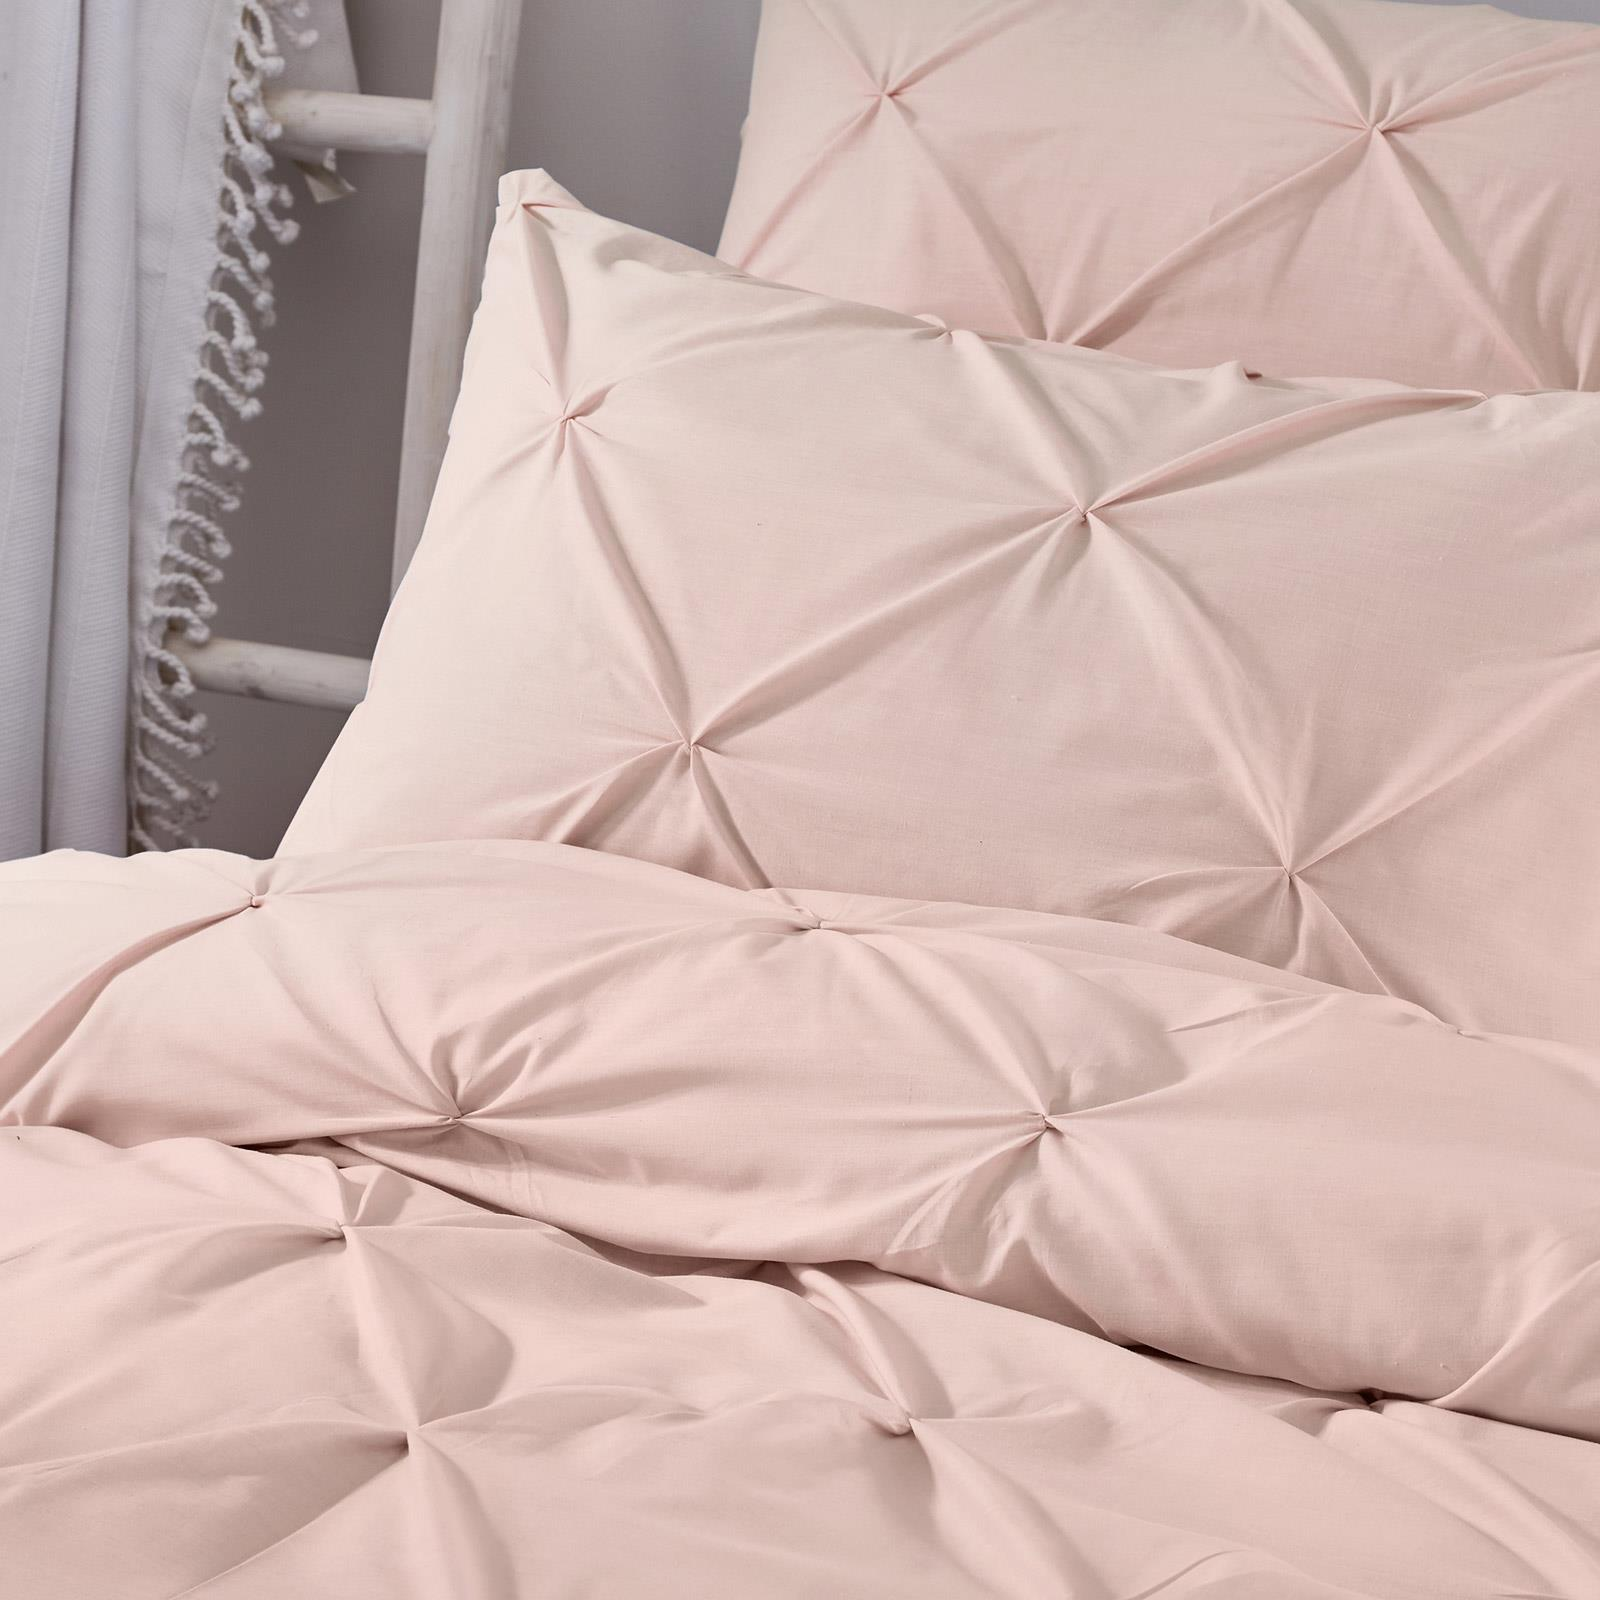 Blush-Duvet-Covers-Ruched-Pin-Tuck-Stitched-Plain-Pink-Quilt-Cover-Bedding-Sets thumbnail 19